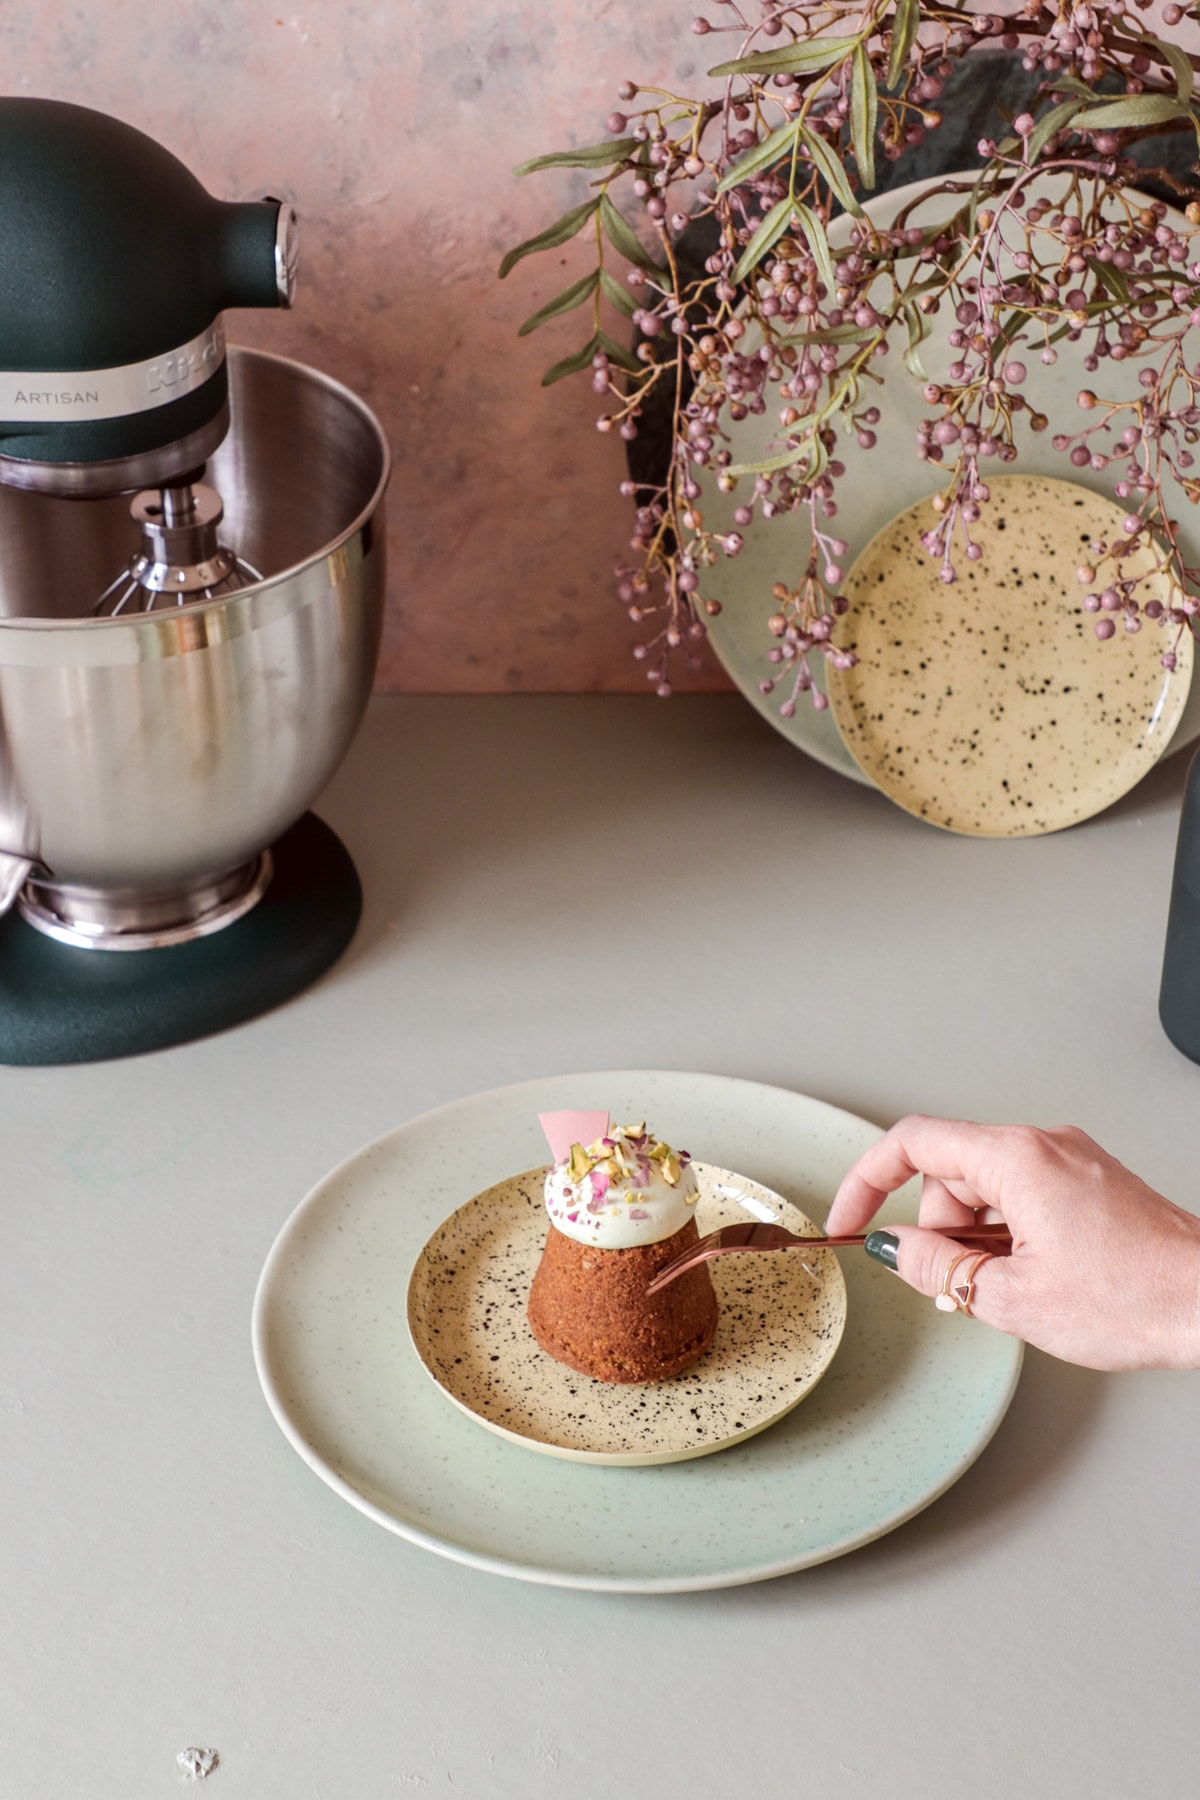 Pistachio muffins with whipped ganache